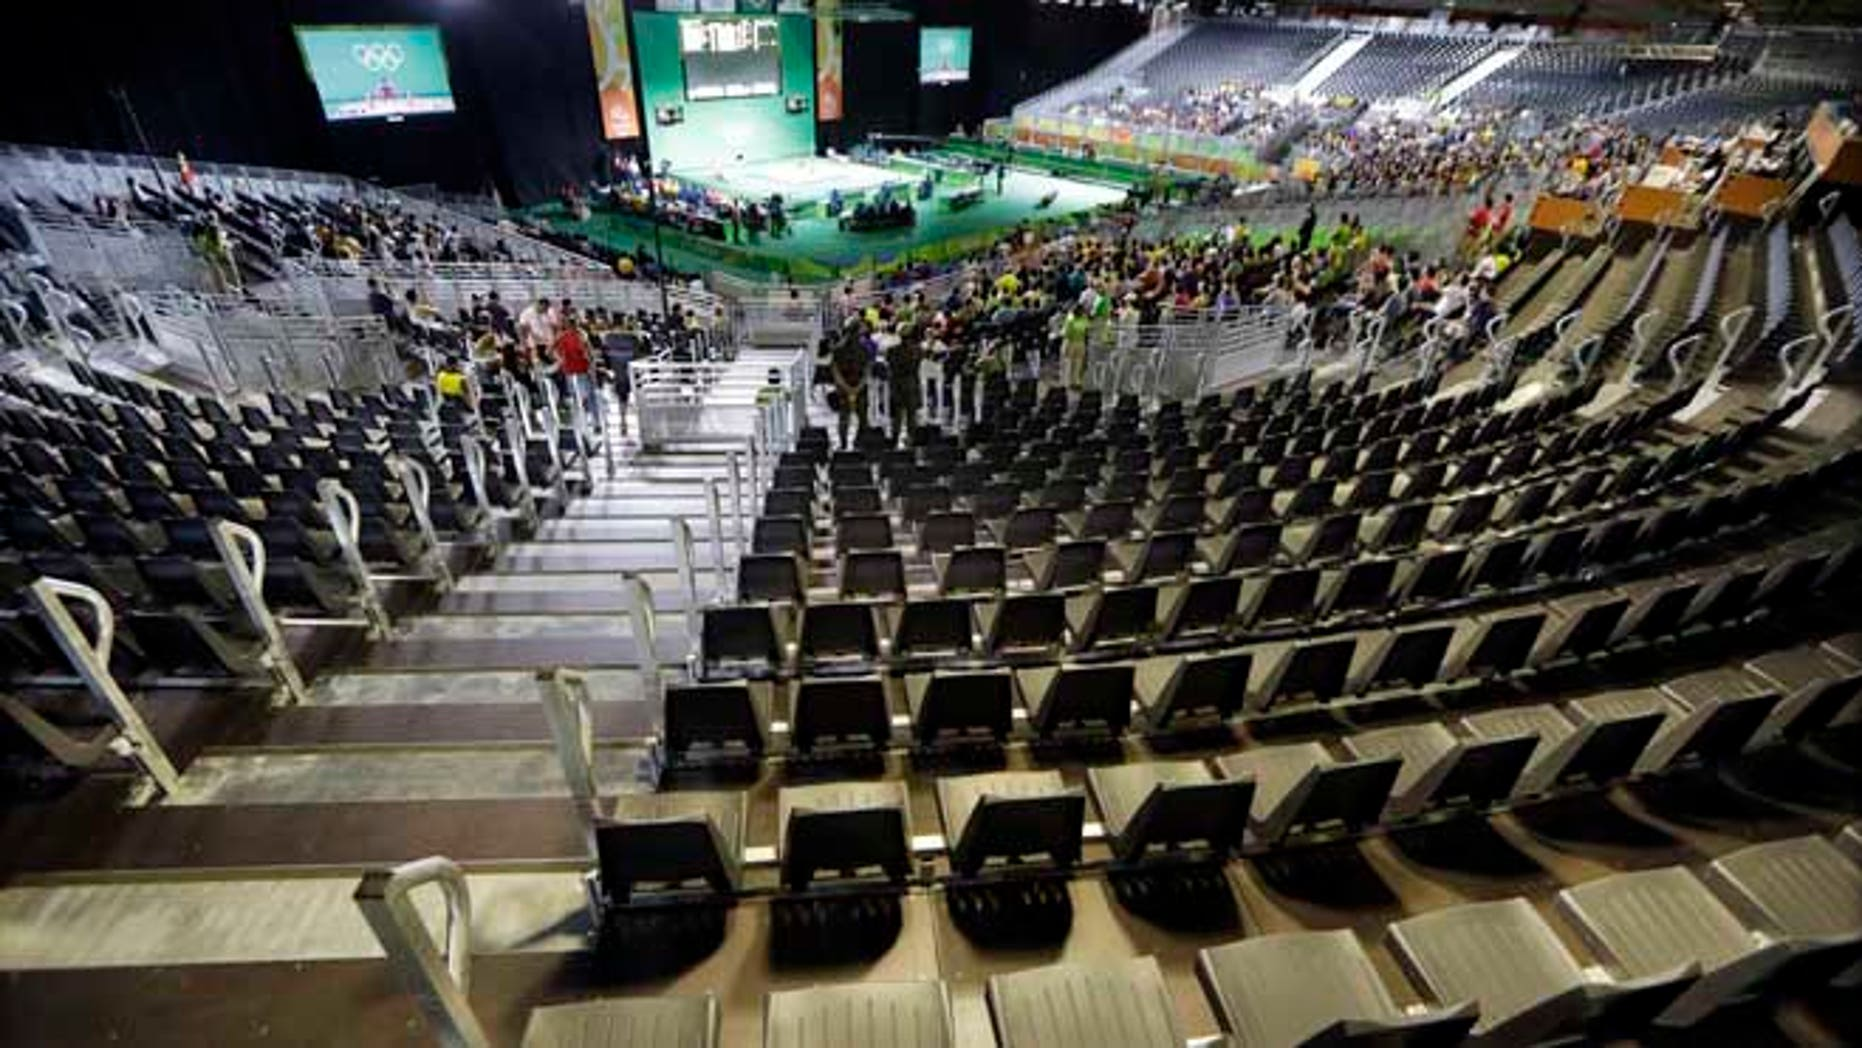 The majority of the spectator seats are empty during the men's 56kg weightlifting competition at the 2016 Summer Olympics in Rio de Janeiro, Brazil, Sunday, Aug. 7, 2016. (AP Photo/Mark Humphrey)